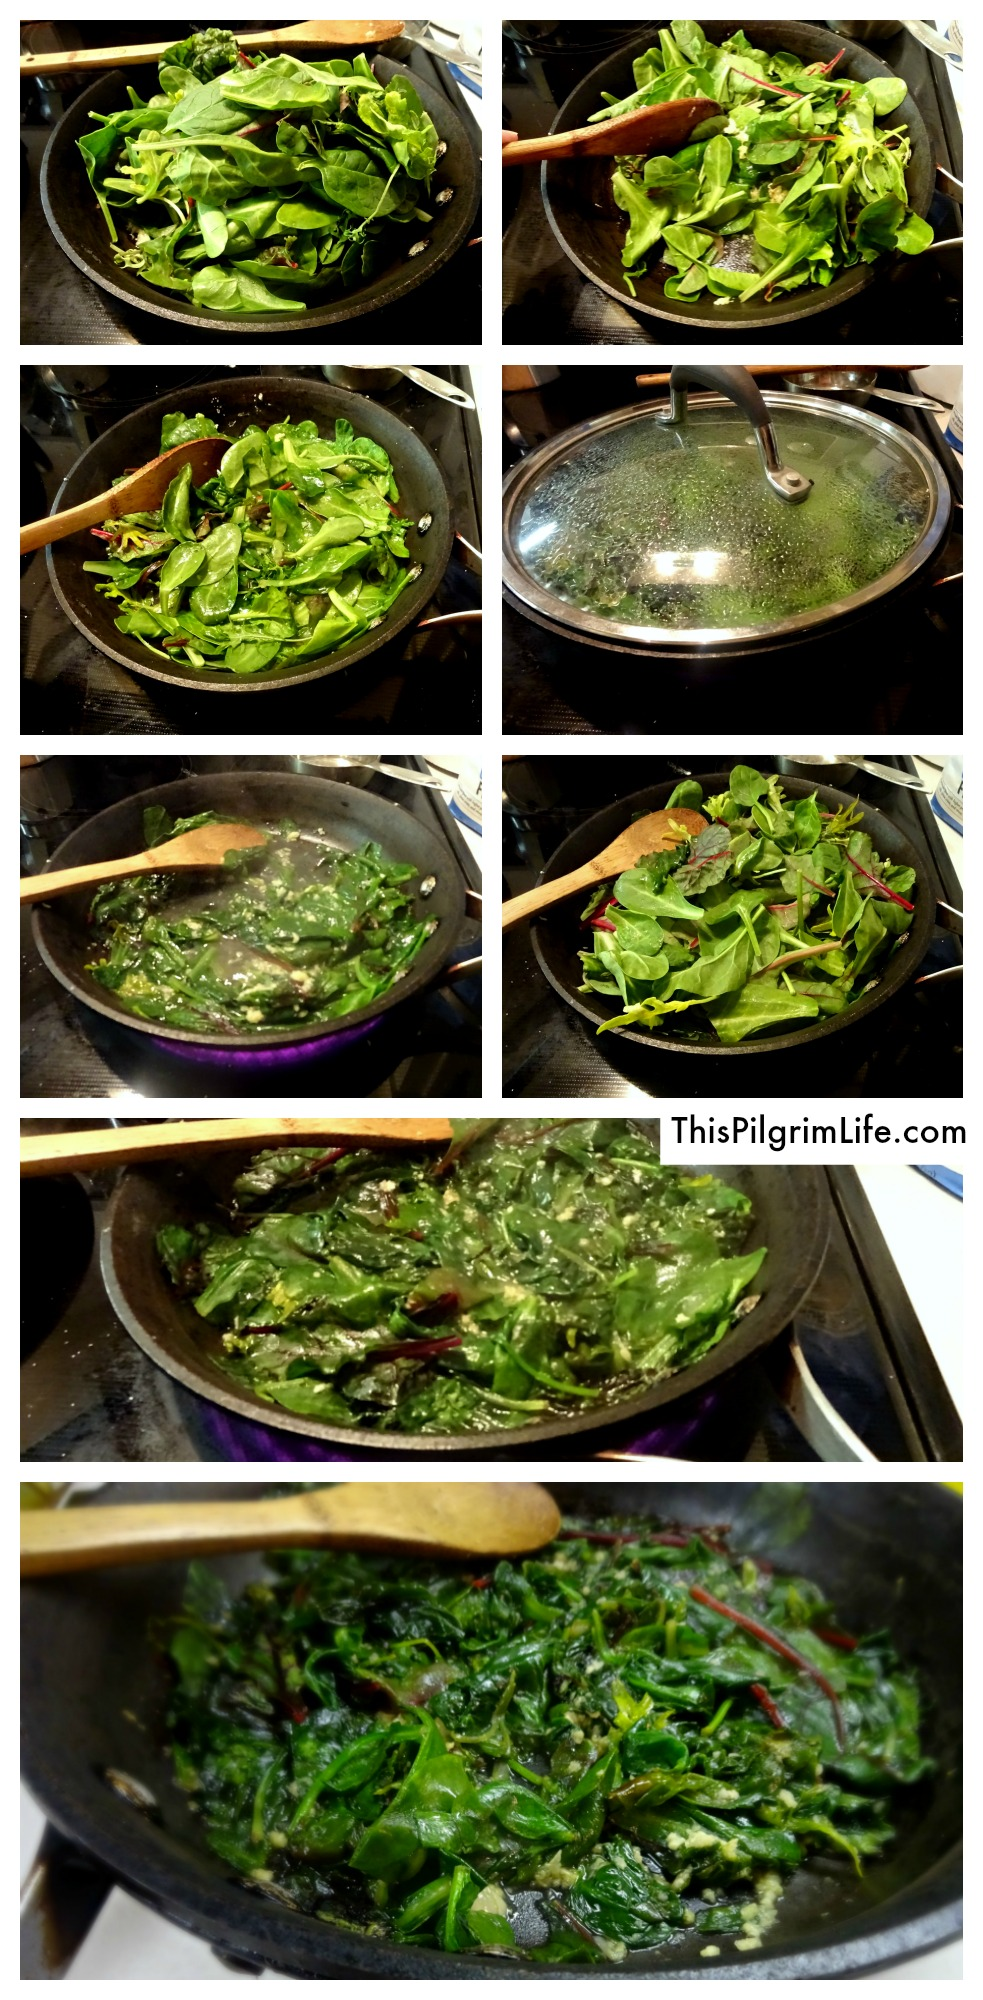 Sautéed garlicky greens are delicious, healthy, and very quick and easy to make! Our kids love them too!